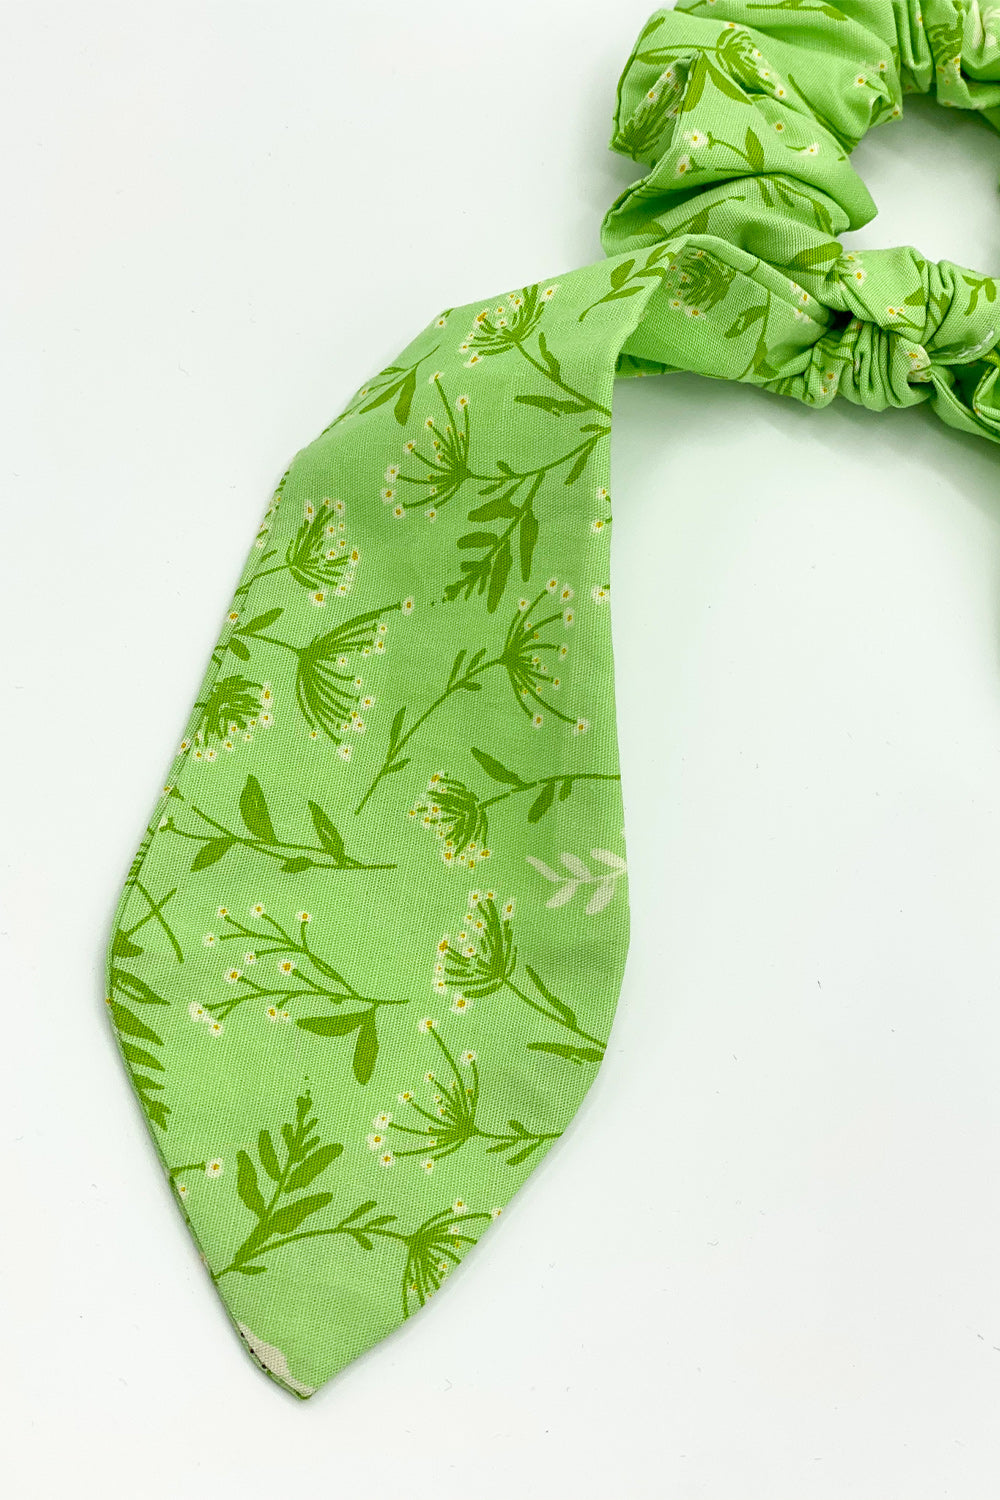 Plant Touch This Green Floral Scrunchie